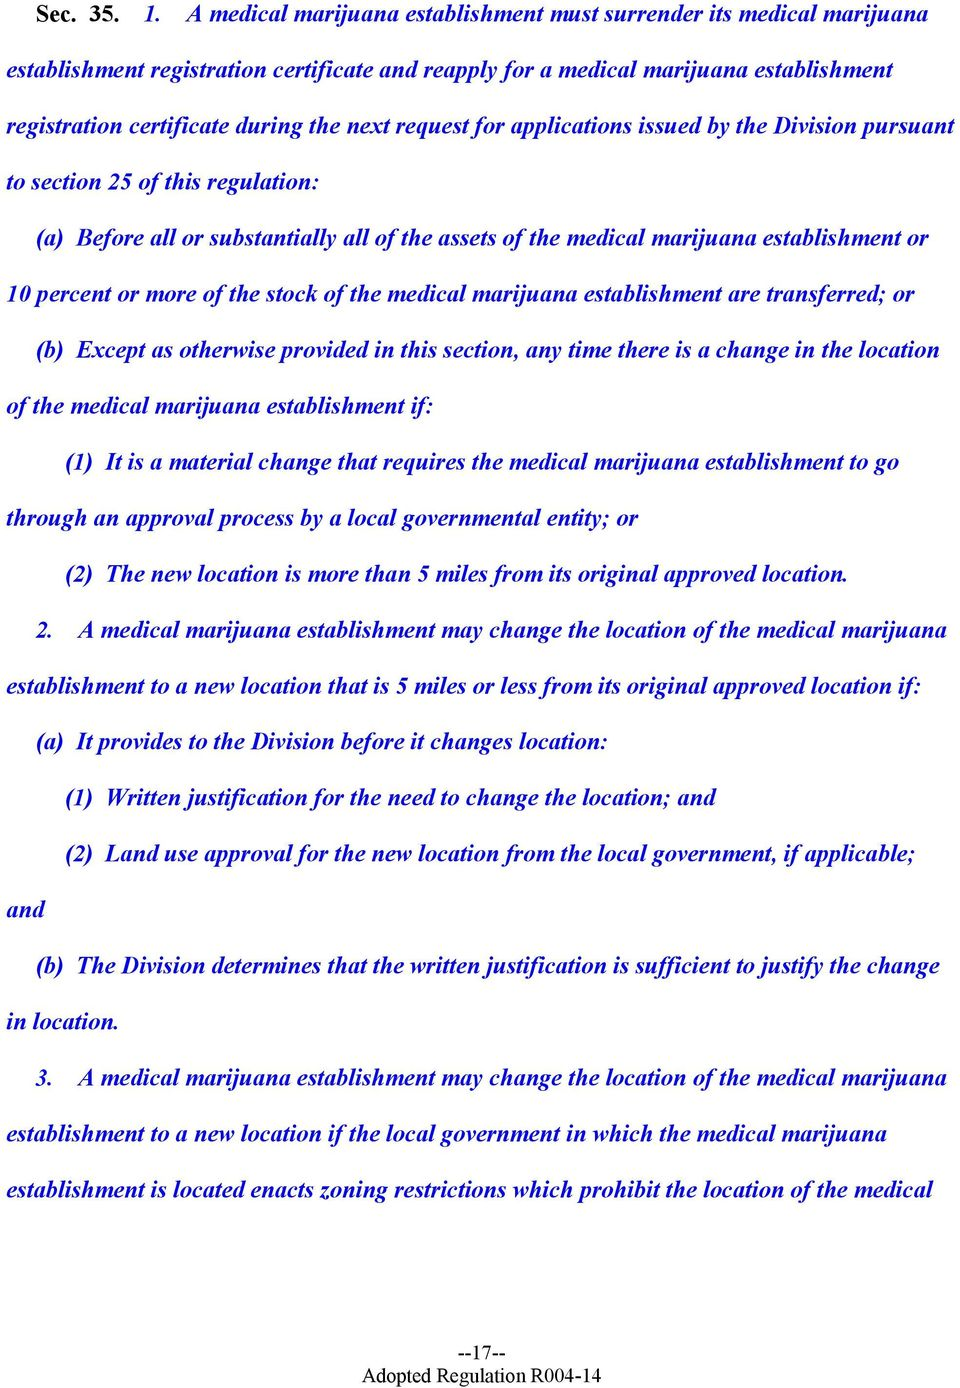 next request for applications issued by the Division pursuant to section 25 of this regulation: (a) Before all or substantially all of the assets of the medical marijuana establishment or 10 percent